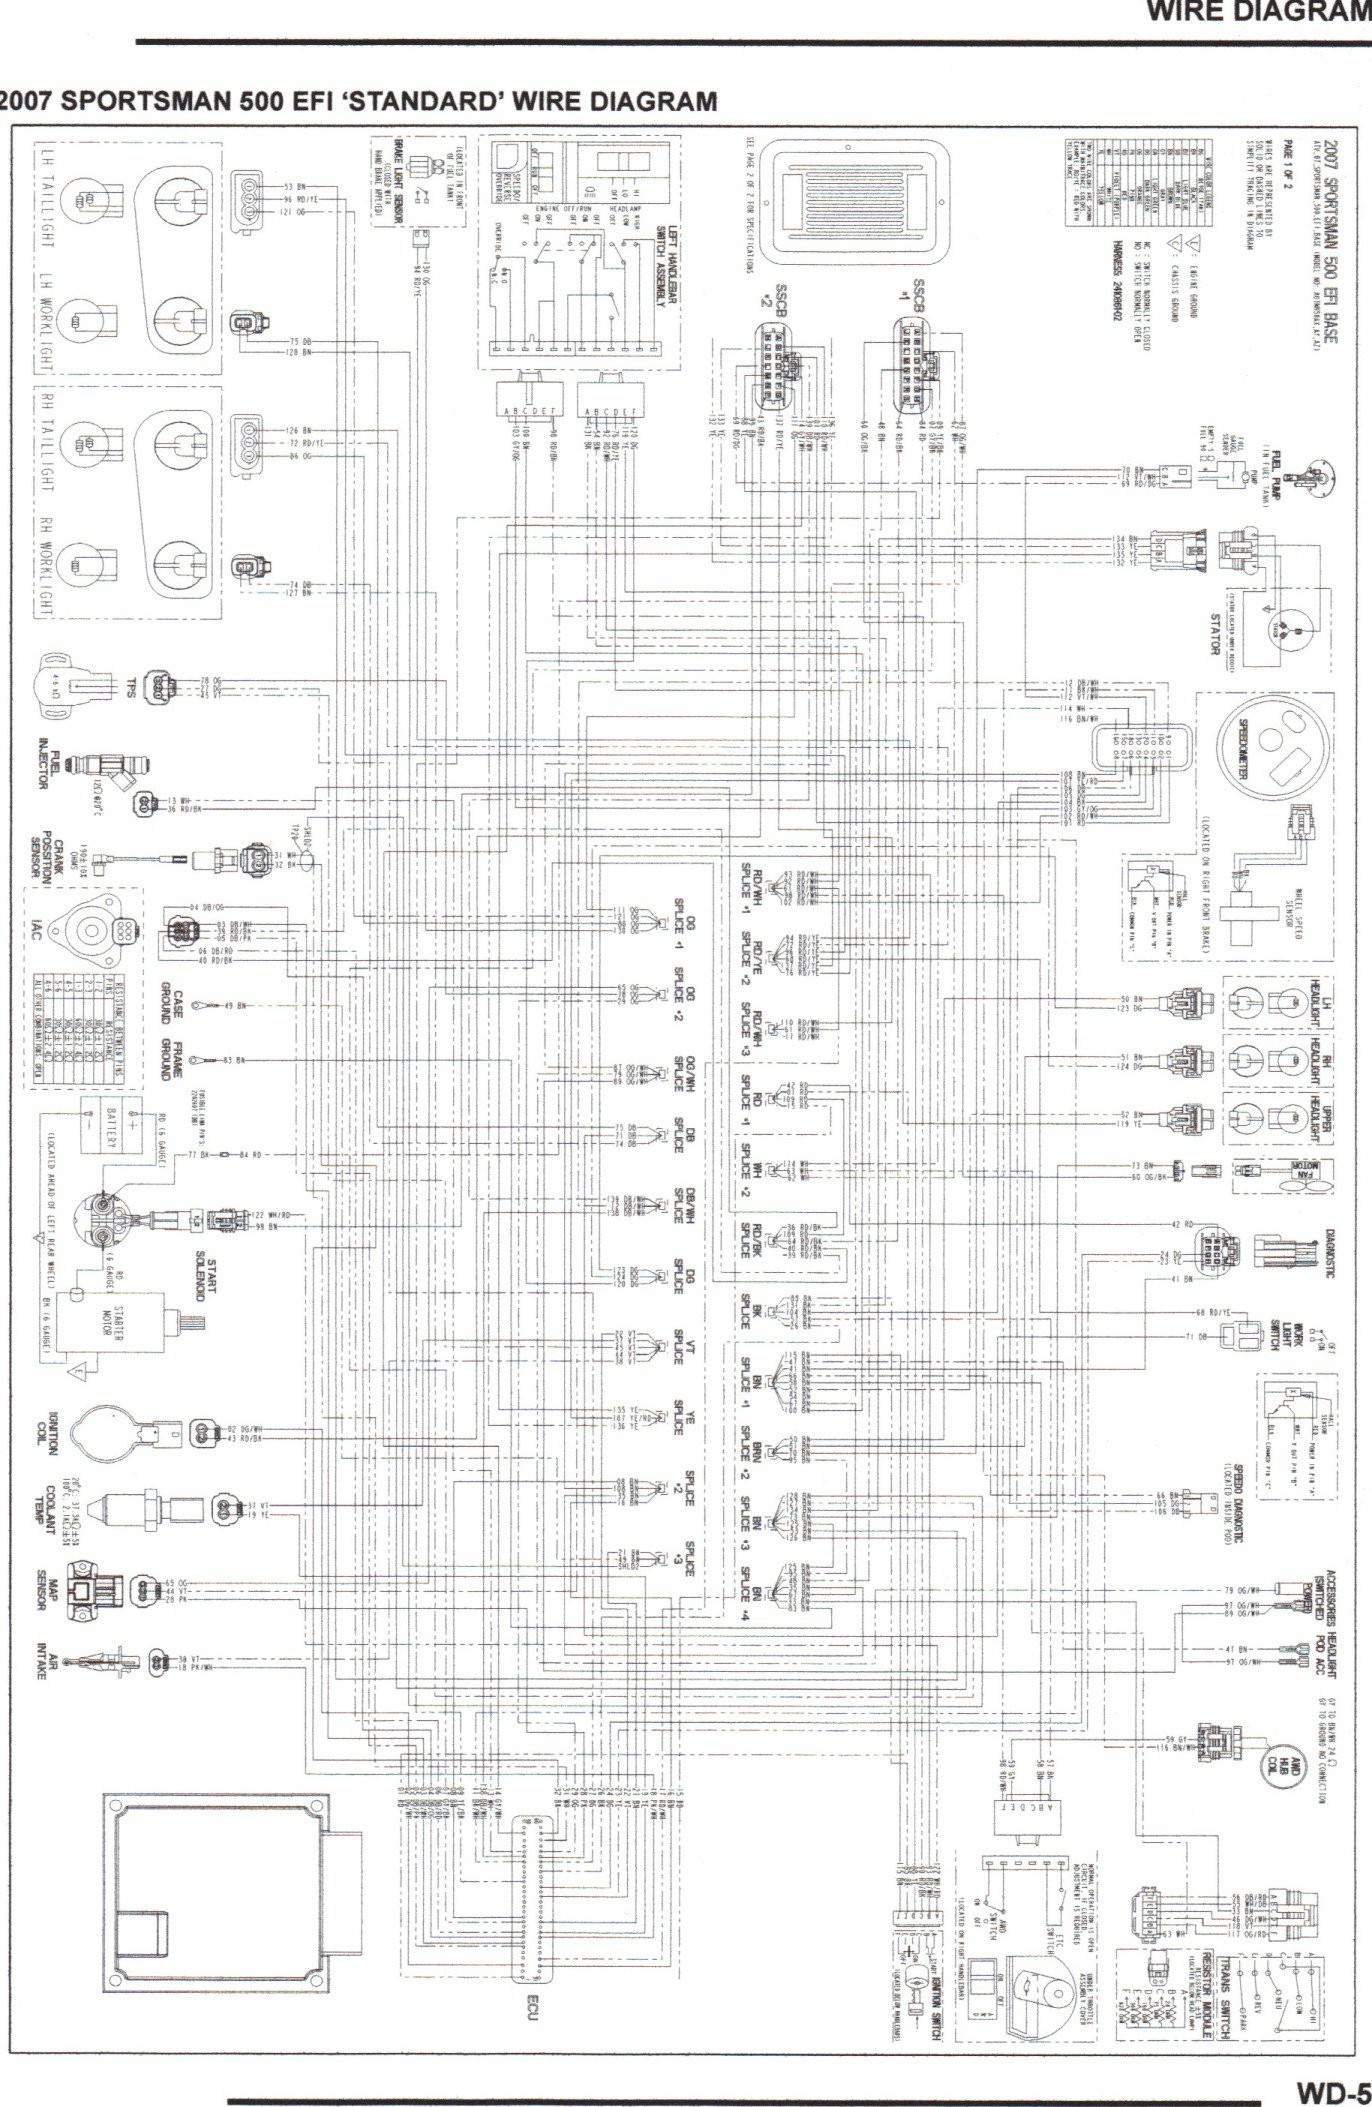 Polari Sportsman 90 Wiring Diagram